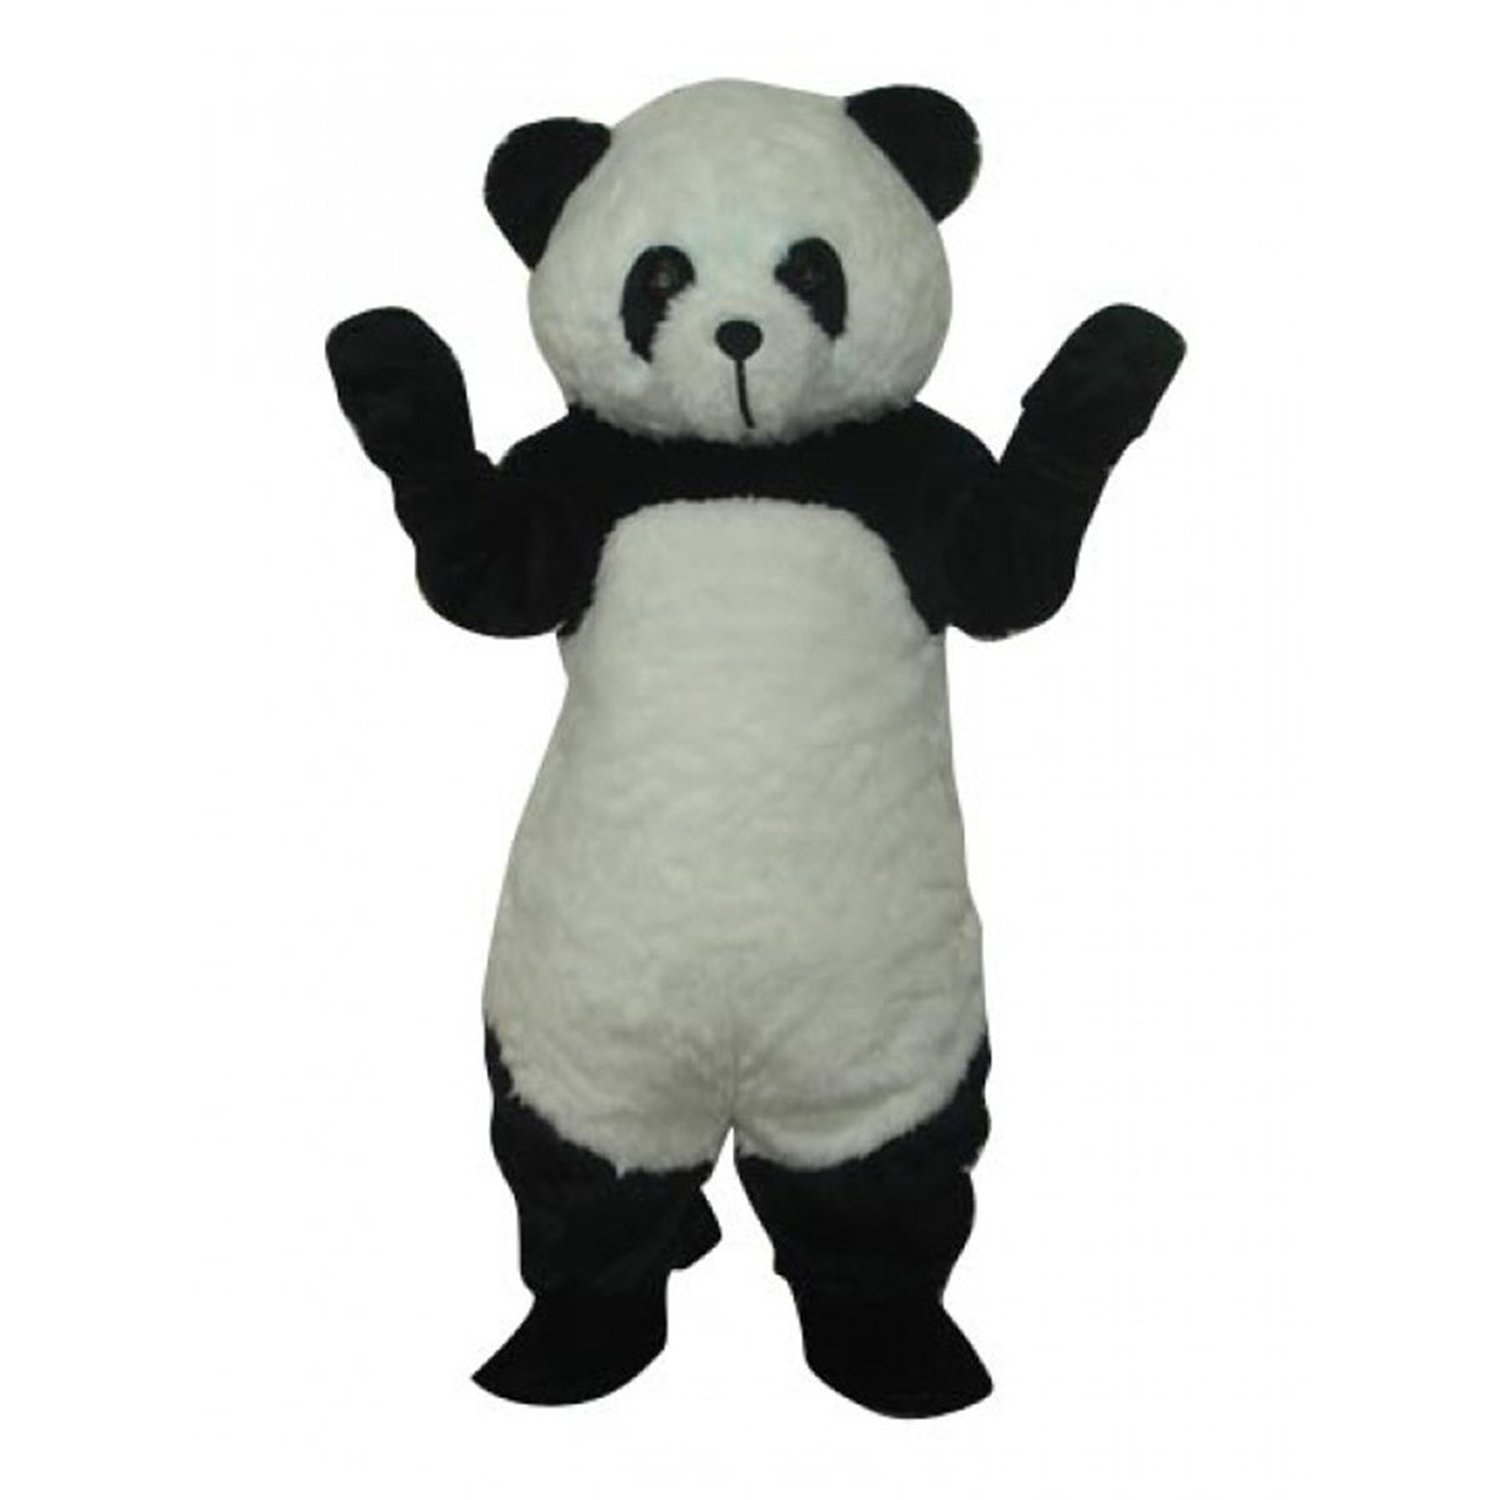 sc 1 st  Where To Get It & Amazon.com: Long Plush Giant Panda Bear Mascot Costume Size L: Clothing